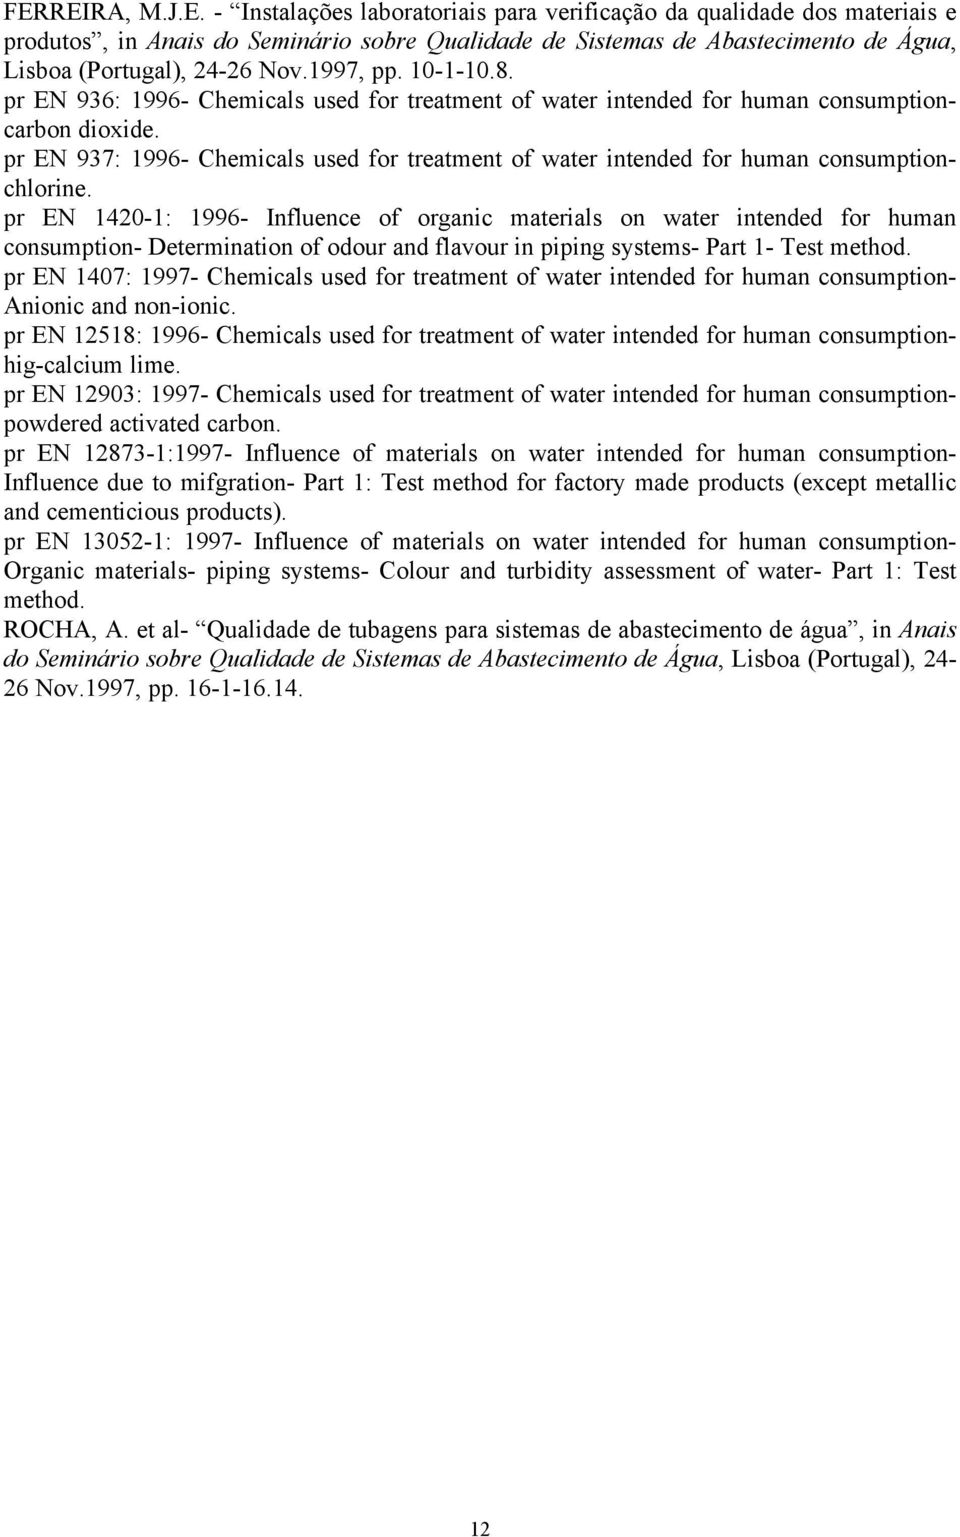 pr EN 937: 1996- Chemicals used for treatment of water intended for human consumptionchlorine.